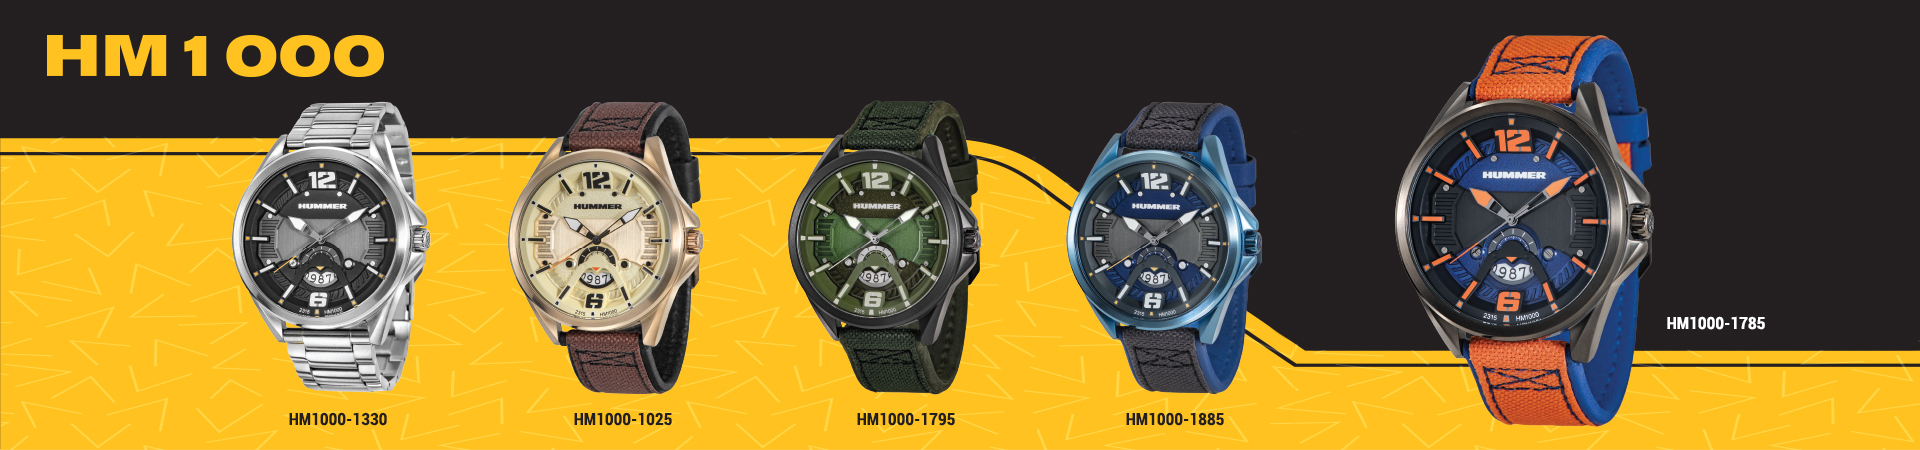 Hummer Watch Collection HM1000